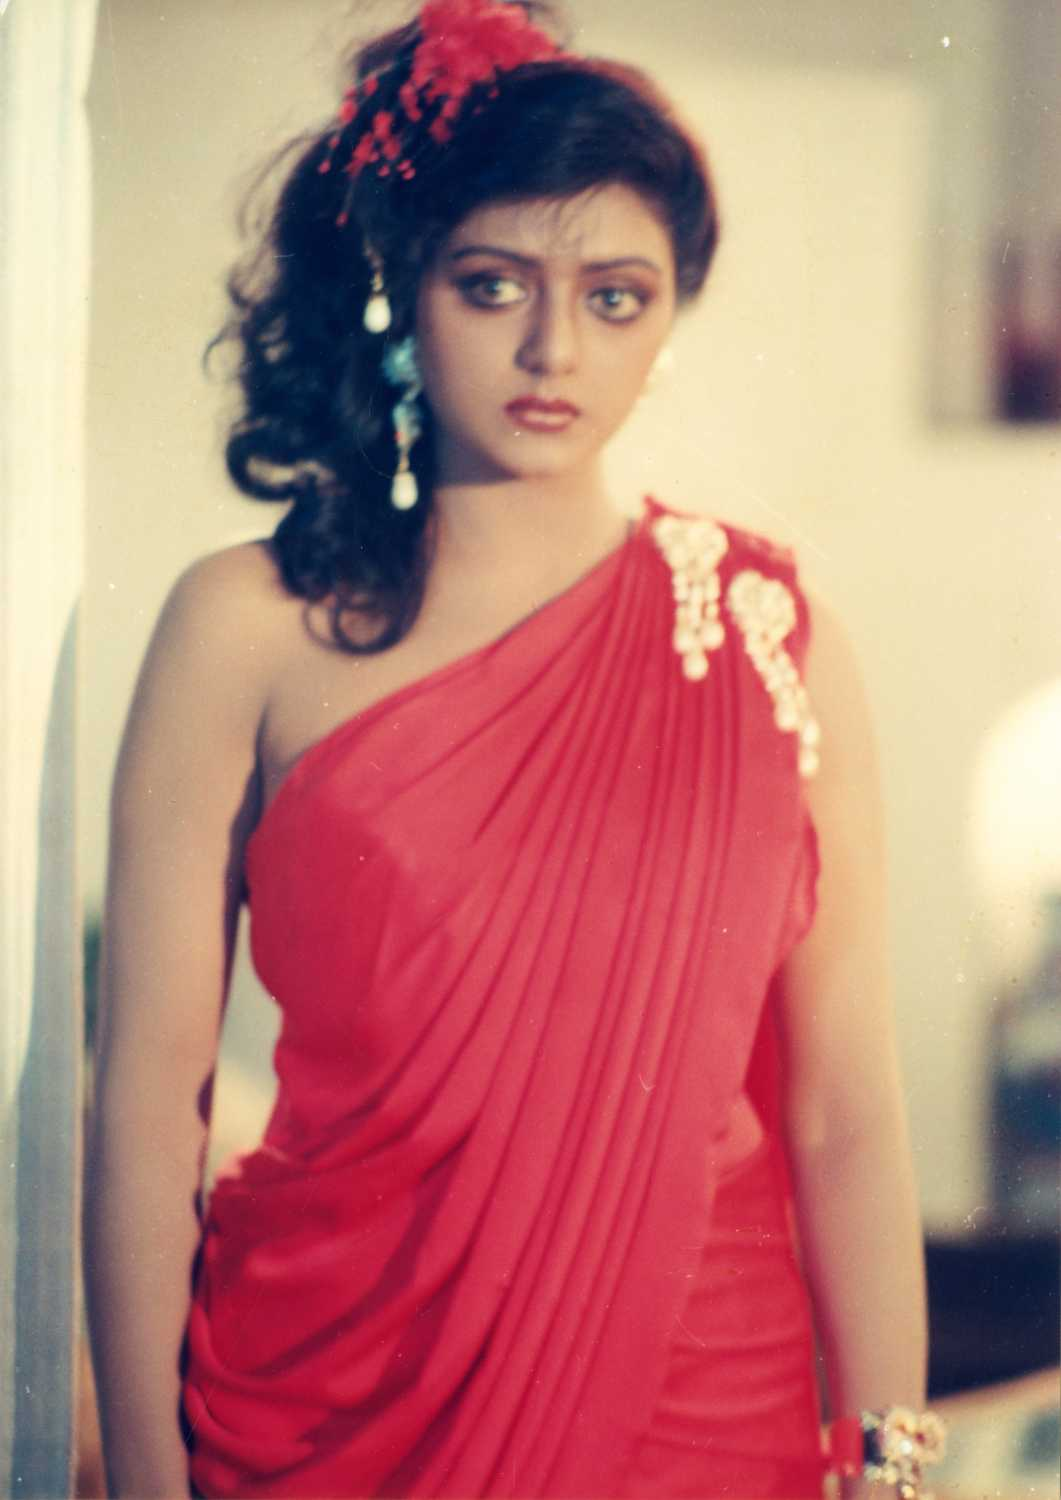 This famous south Indian actress left school for acting, later married an NRI